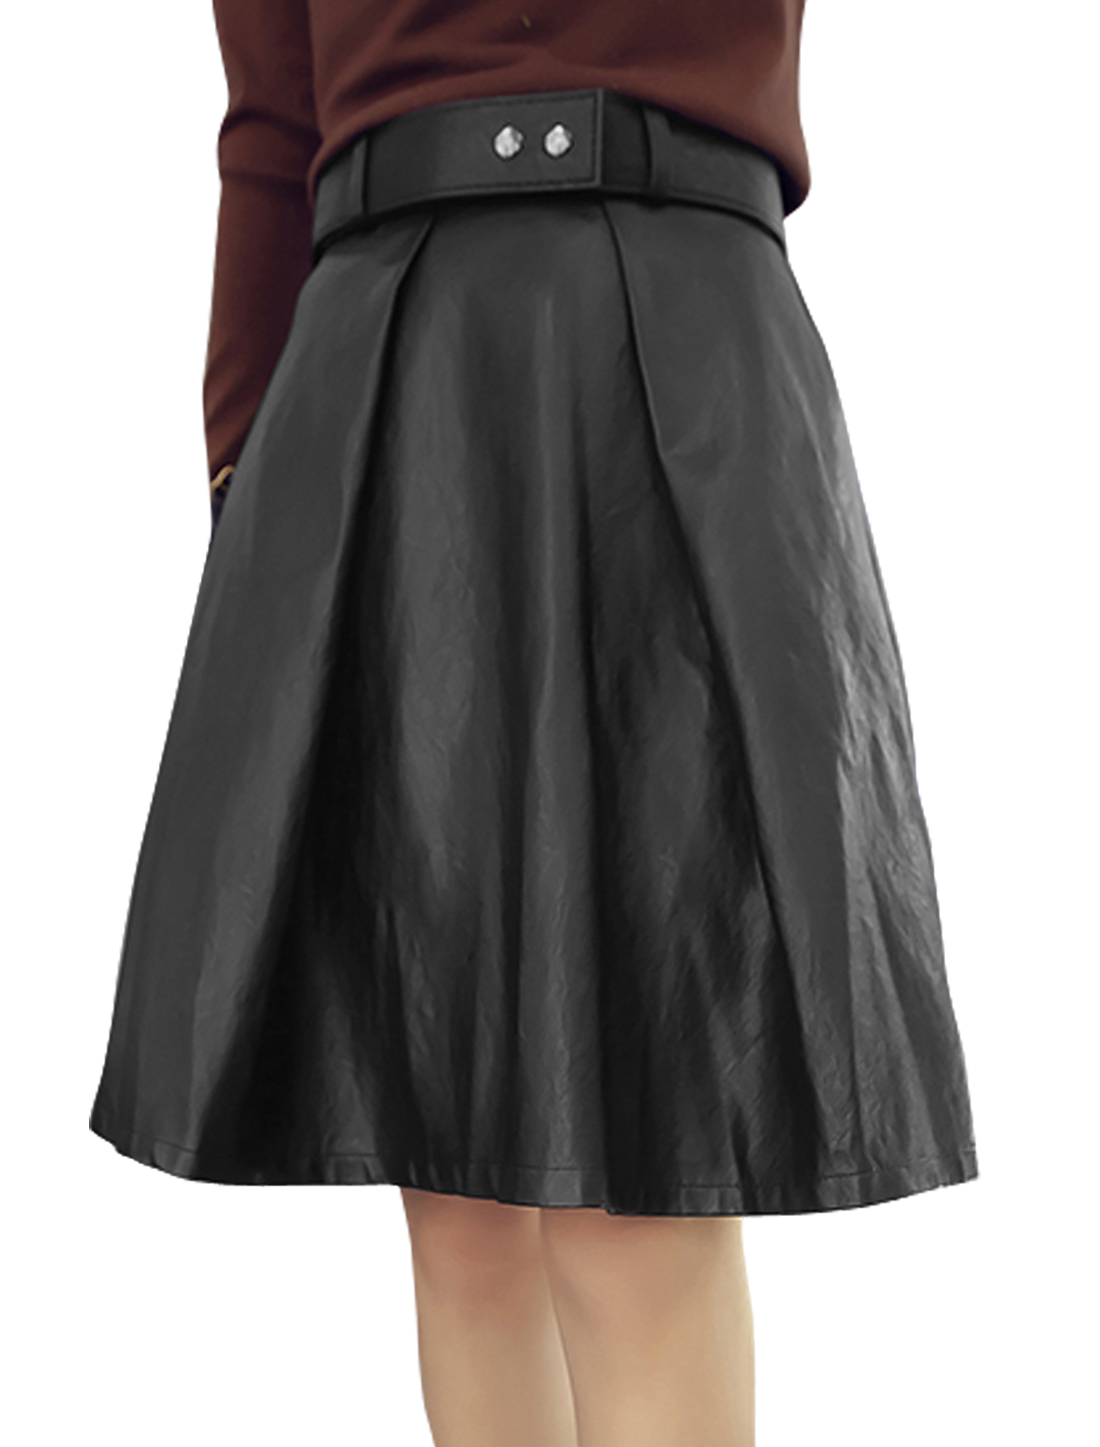 Women High Waist Unlined Casual PU A Line Skirt w Belt Black M